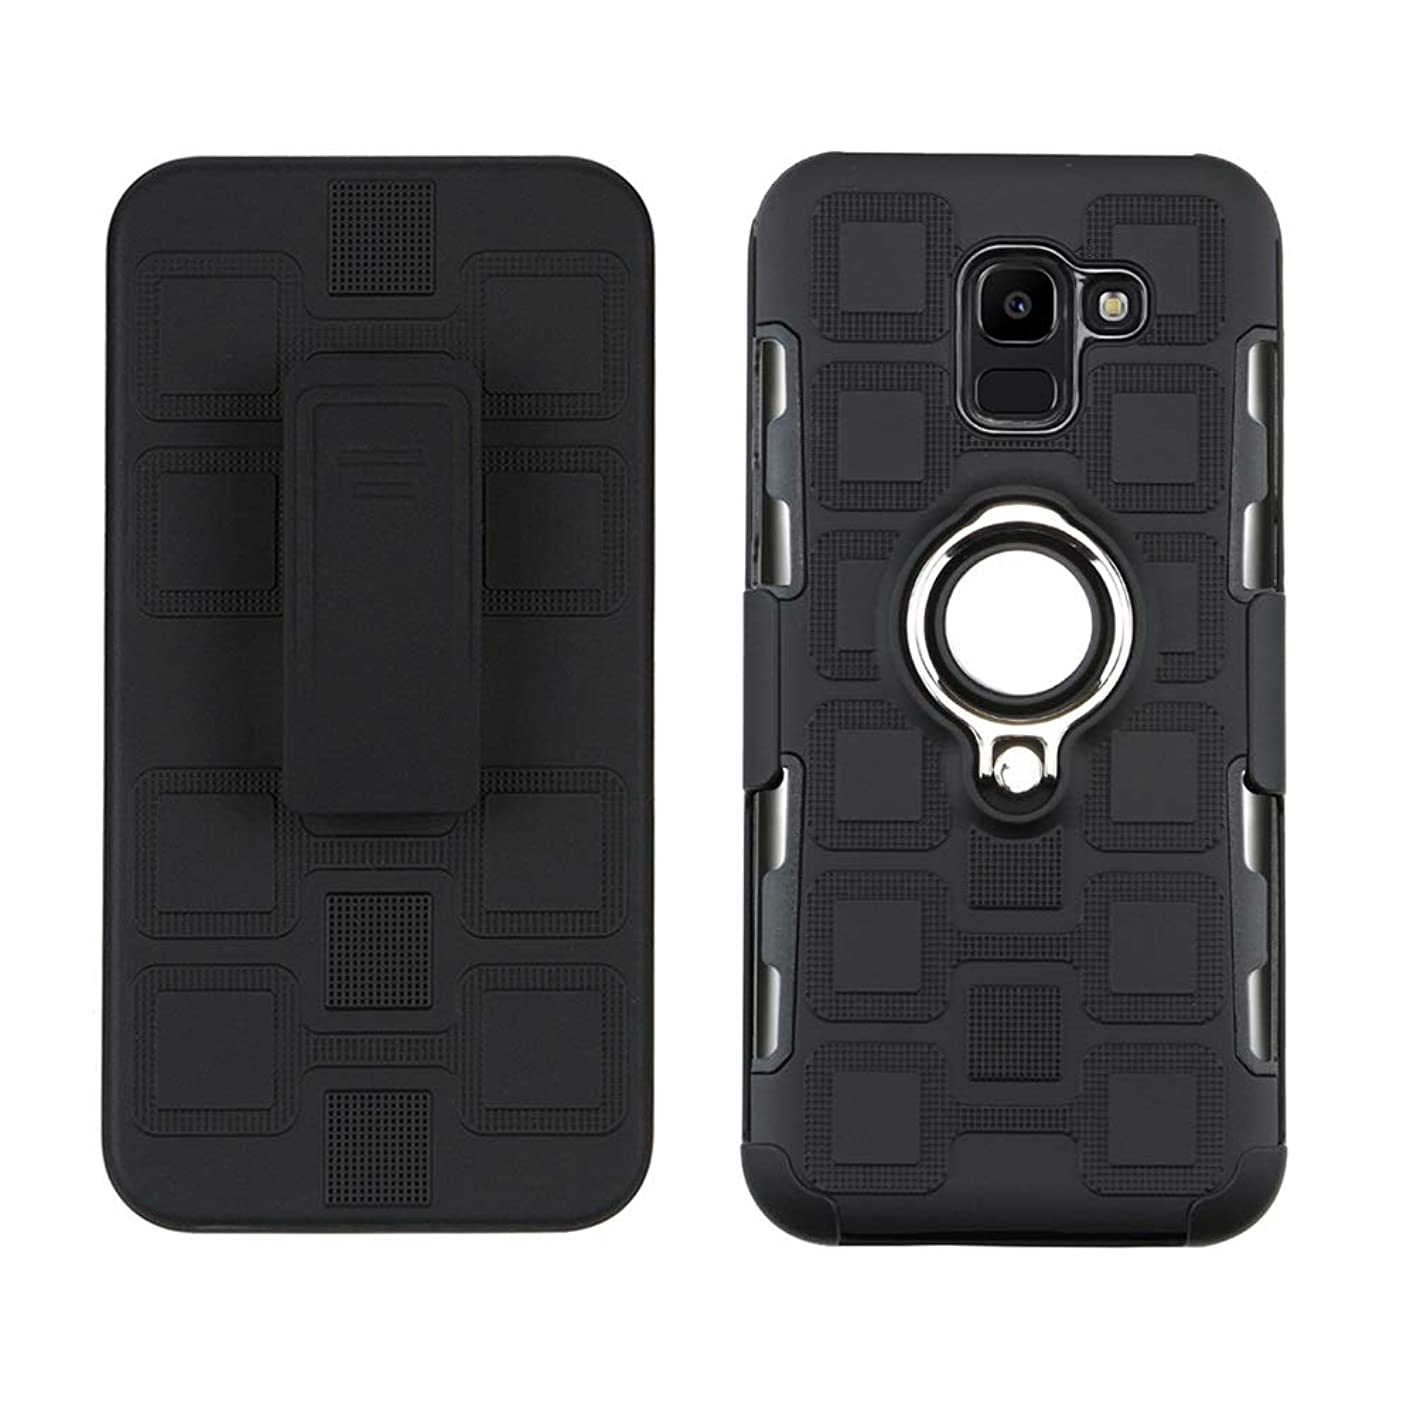 Lantier High Impact Three Layer Hybrid Full Shockproof Armor Rugged Holster Protection Case with Kickstand Magnet 360 Degree Rotating Ring Belt Swivel Clip for Samsung Galaxy J6 Plus/J6 Prime Black